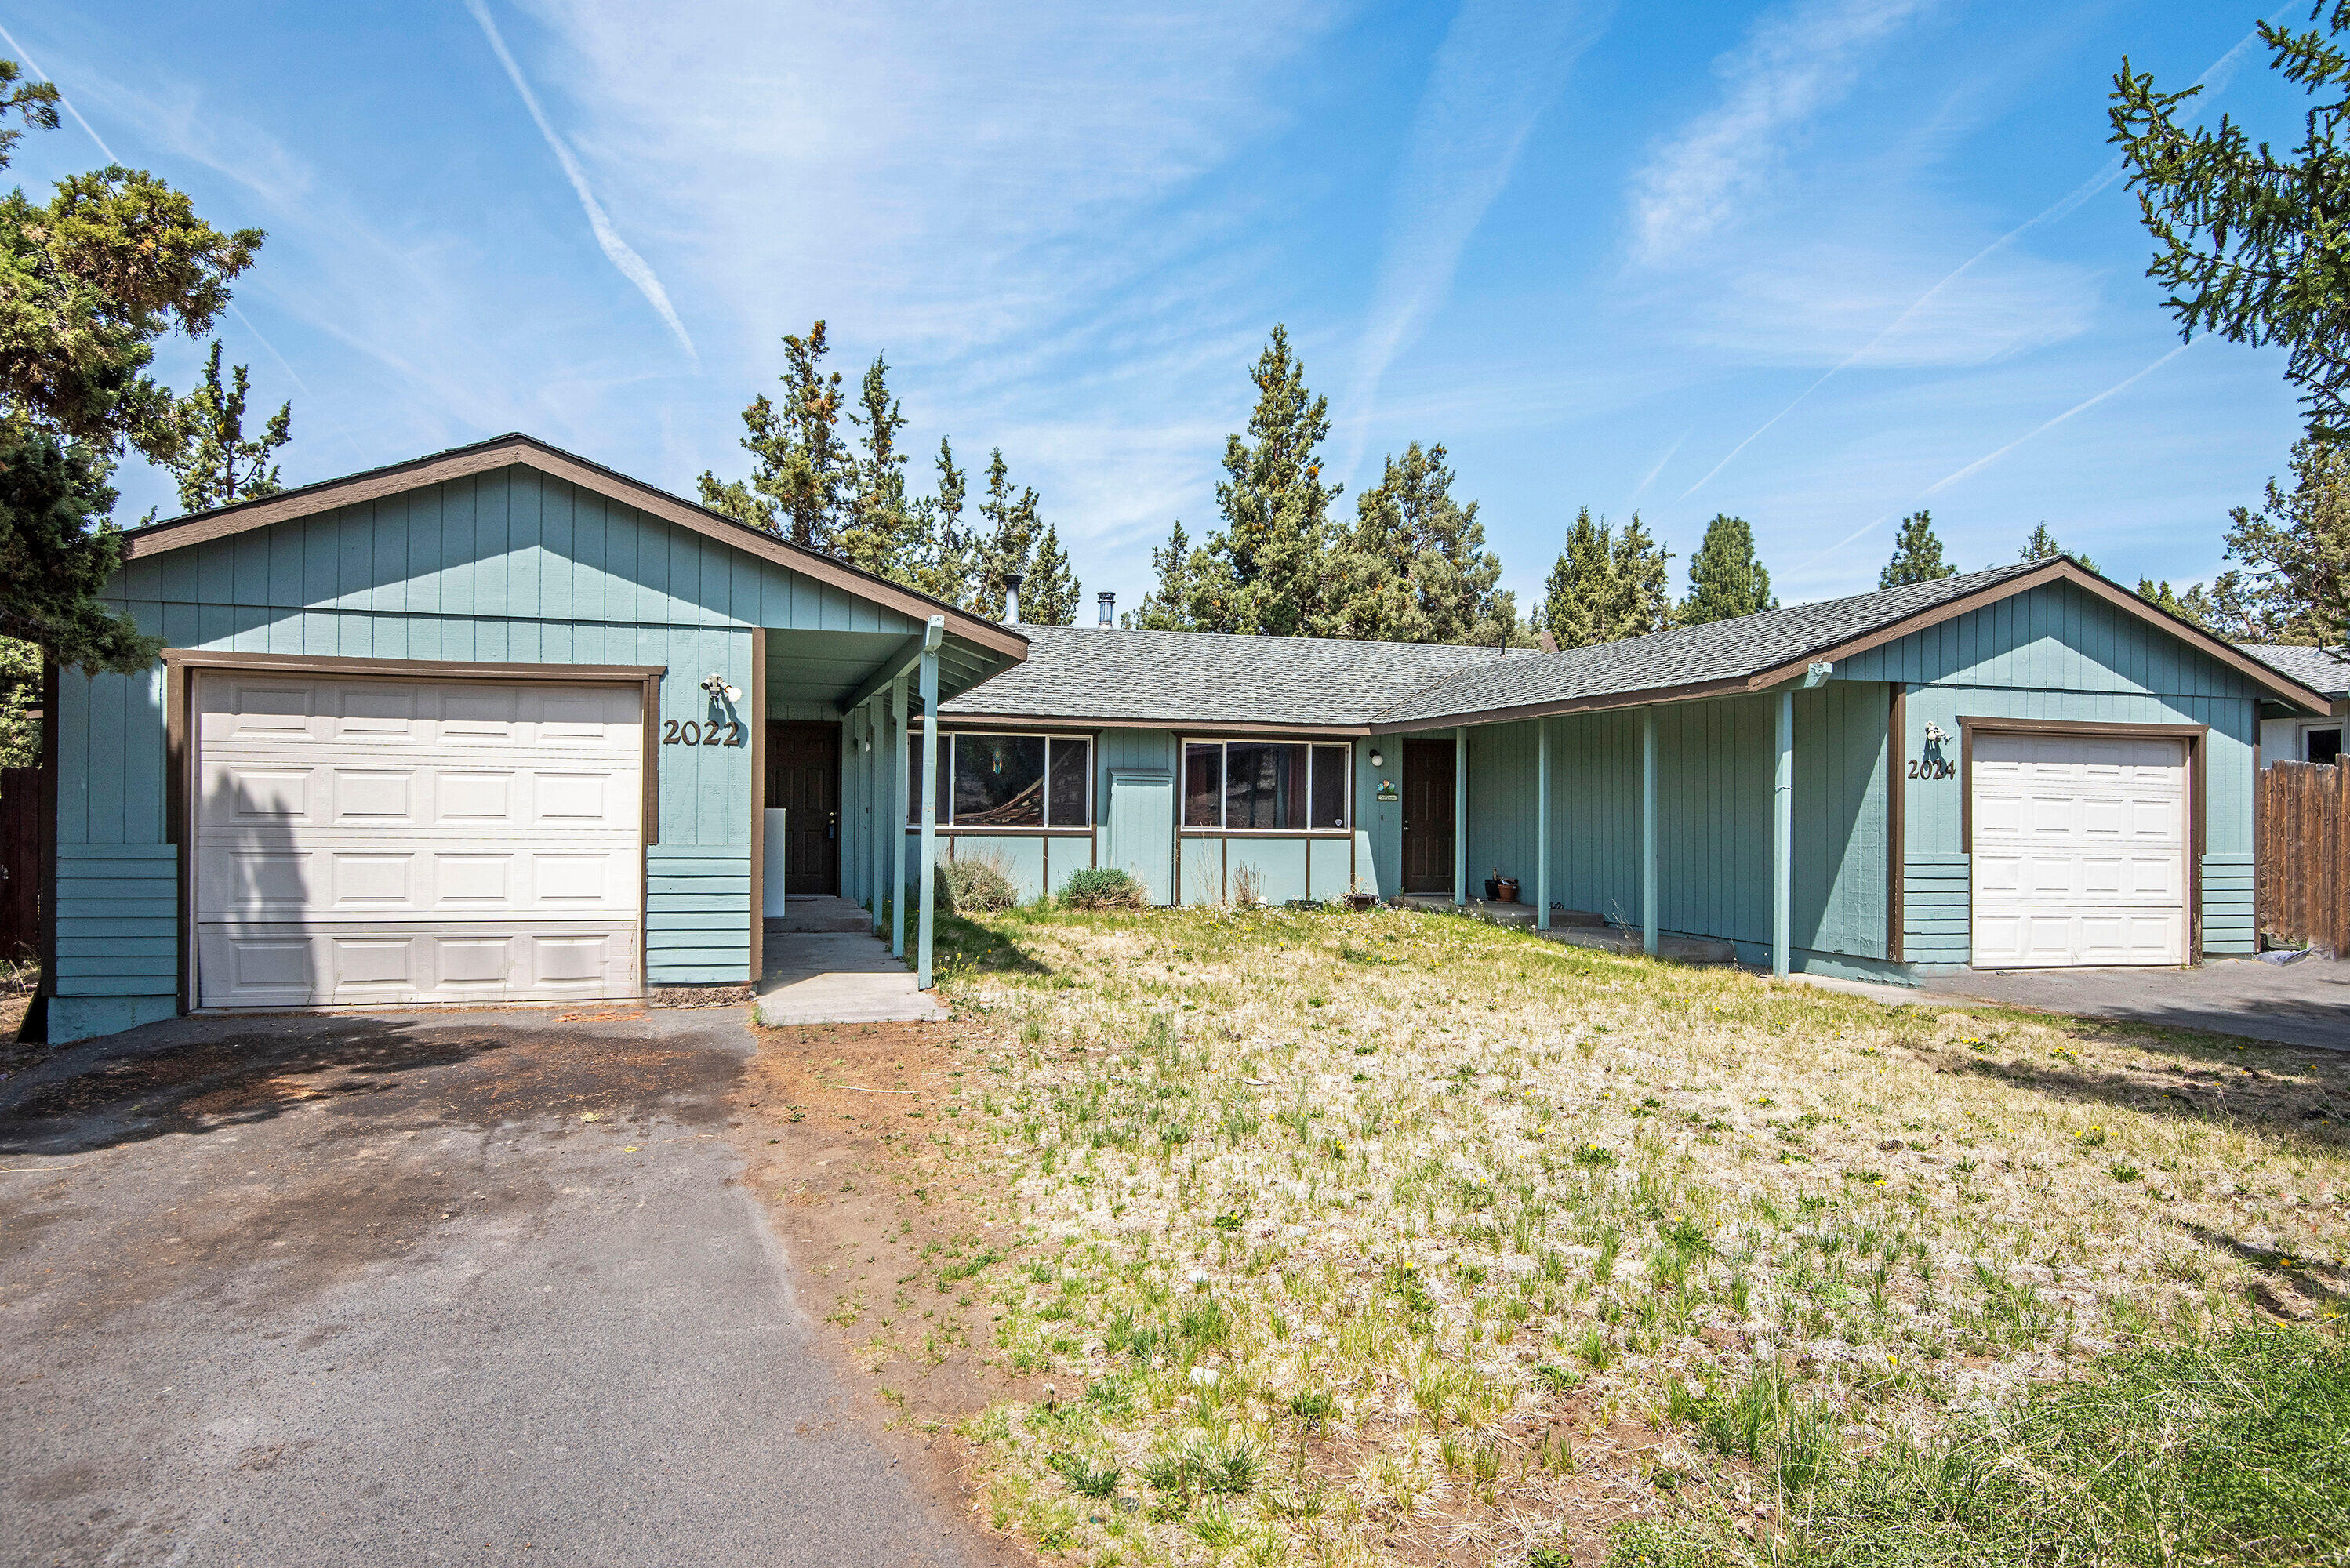 Single level duplex close to hospital and all other amenities. Single-car garage and driveway parking for each unit, as well as street parking. Large .29 acre lot zoned RM. Each unit has a spacious fully-fenced backyard. Long-term renters in good standing who would like to stay.